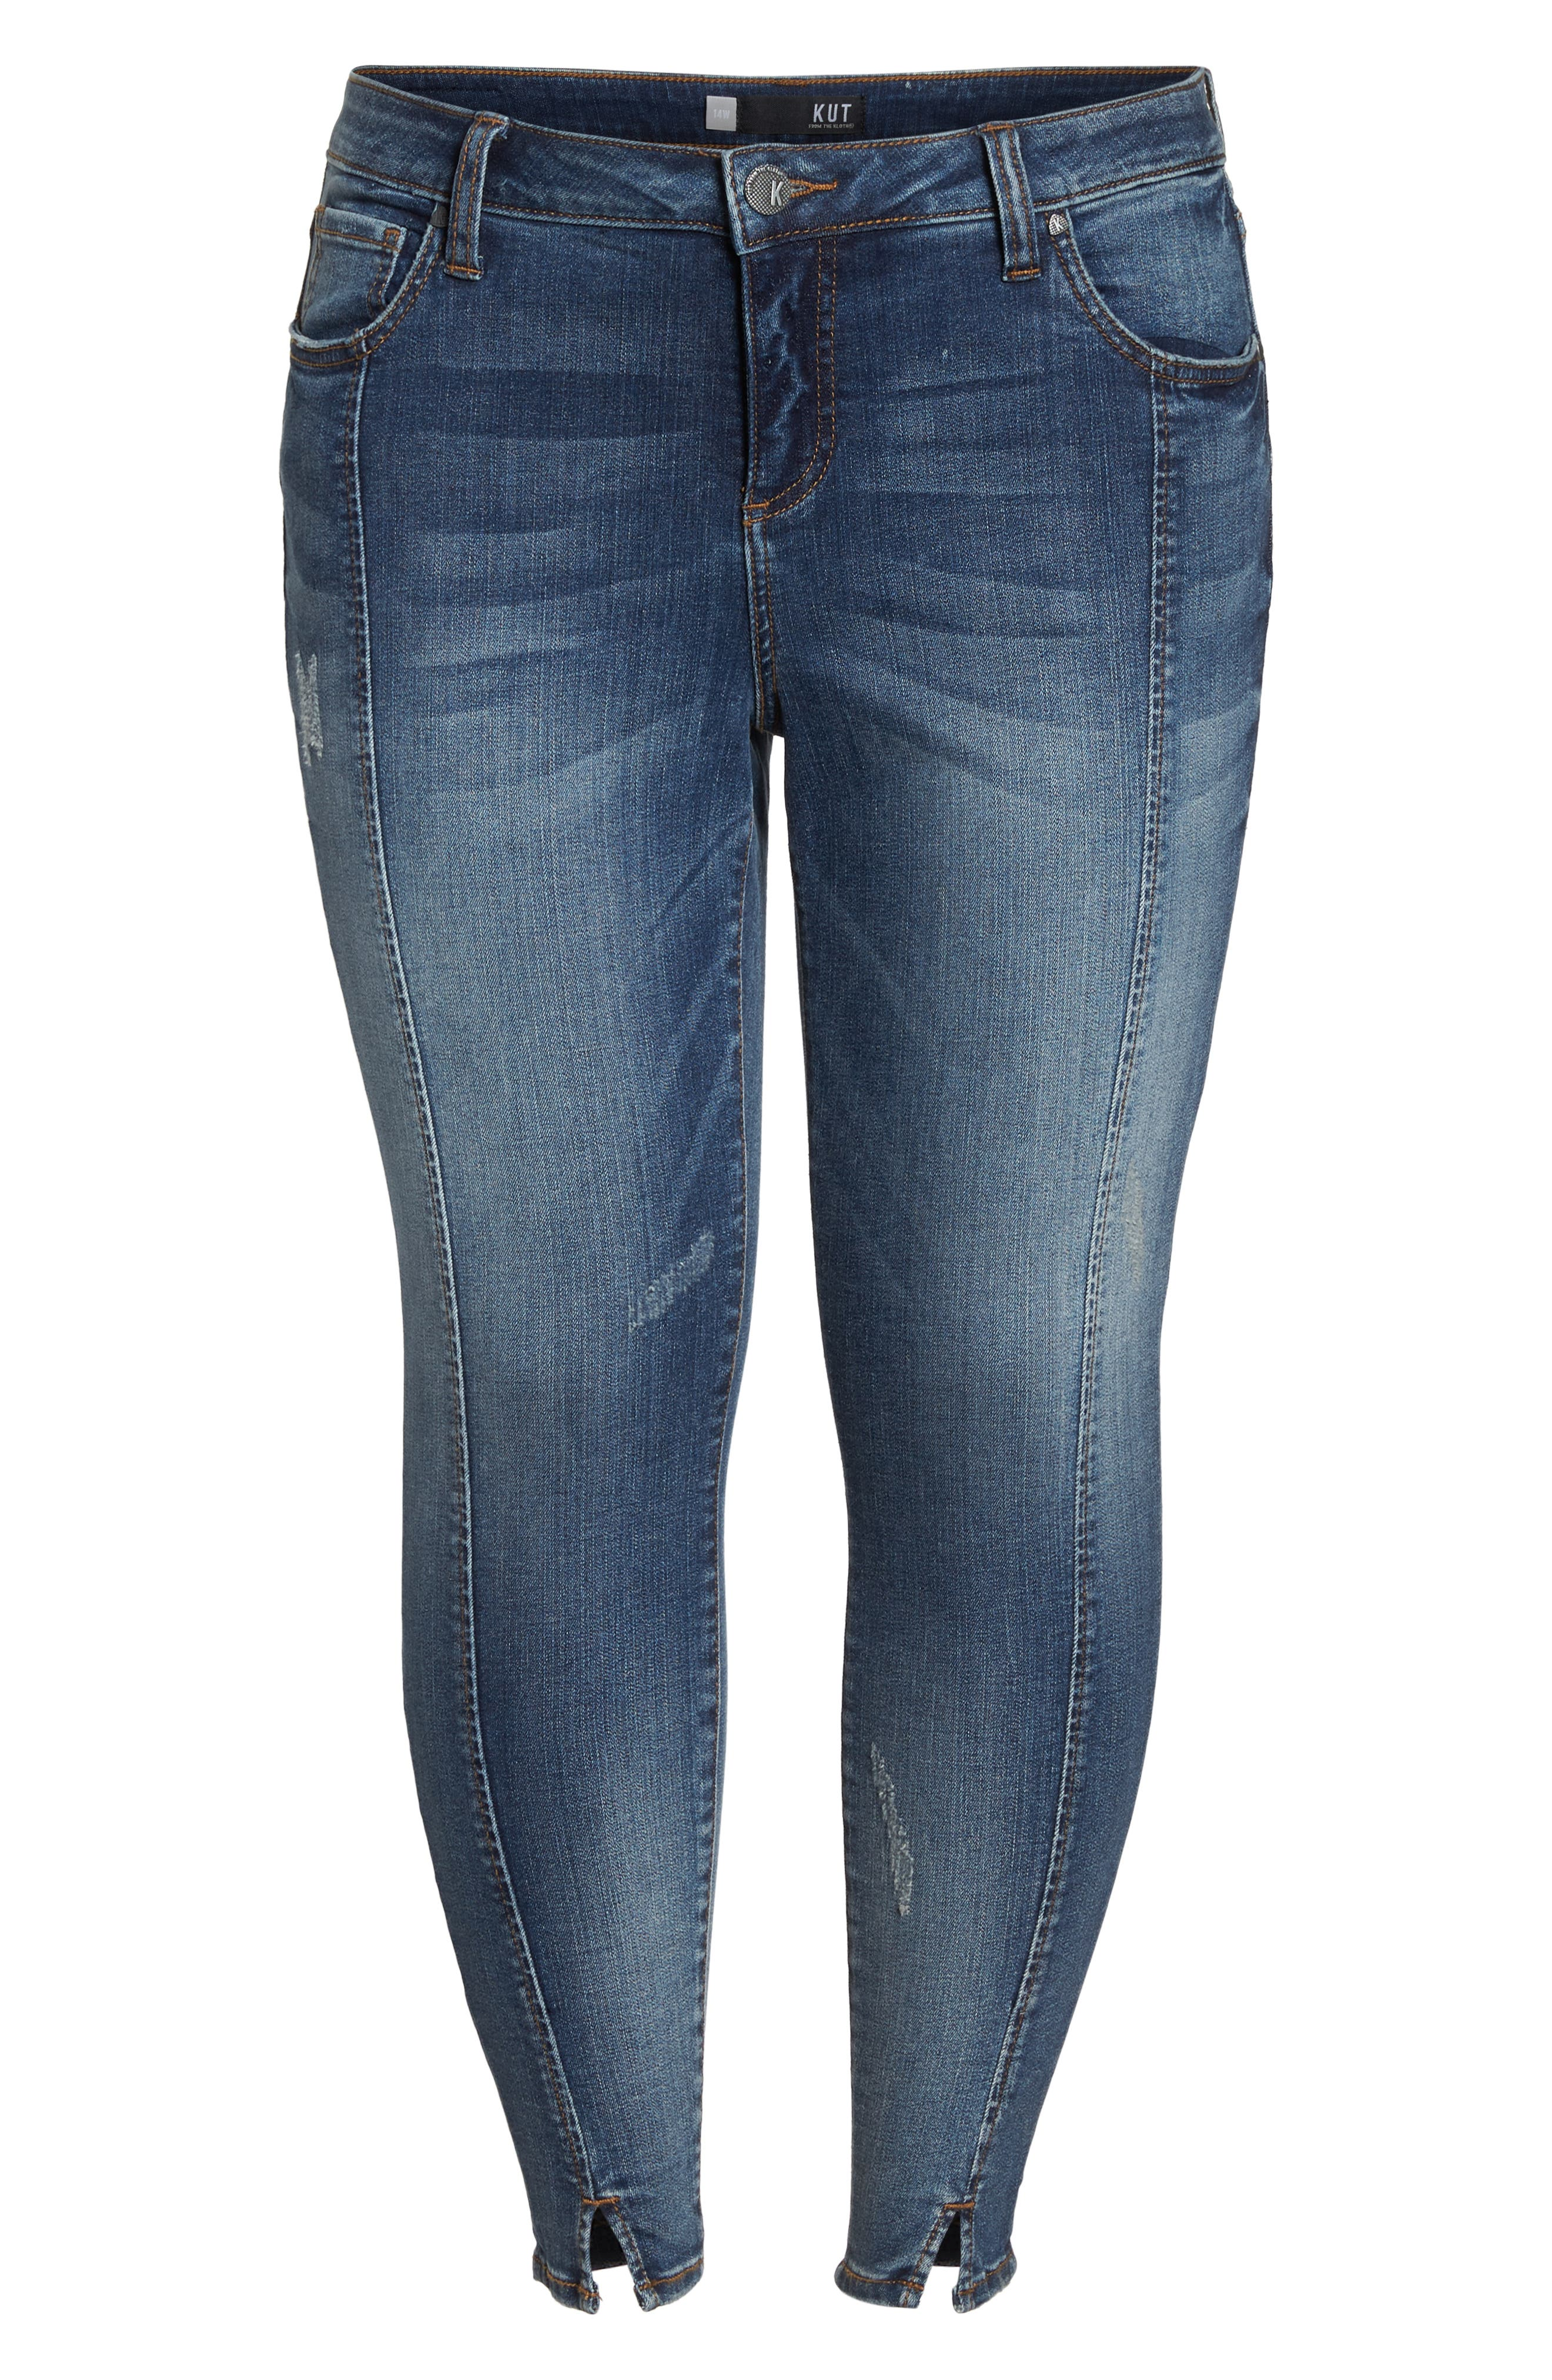 Reese Seam Ankle Skinny Jeans,                             Alternate thumbnail 3, color,                             Poetic